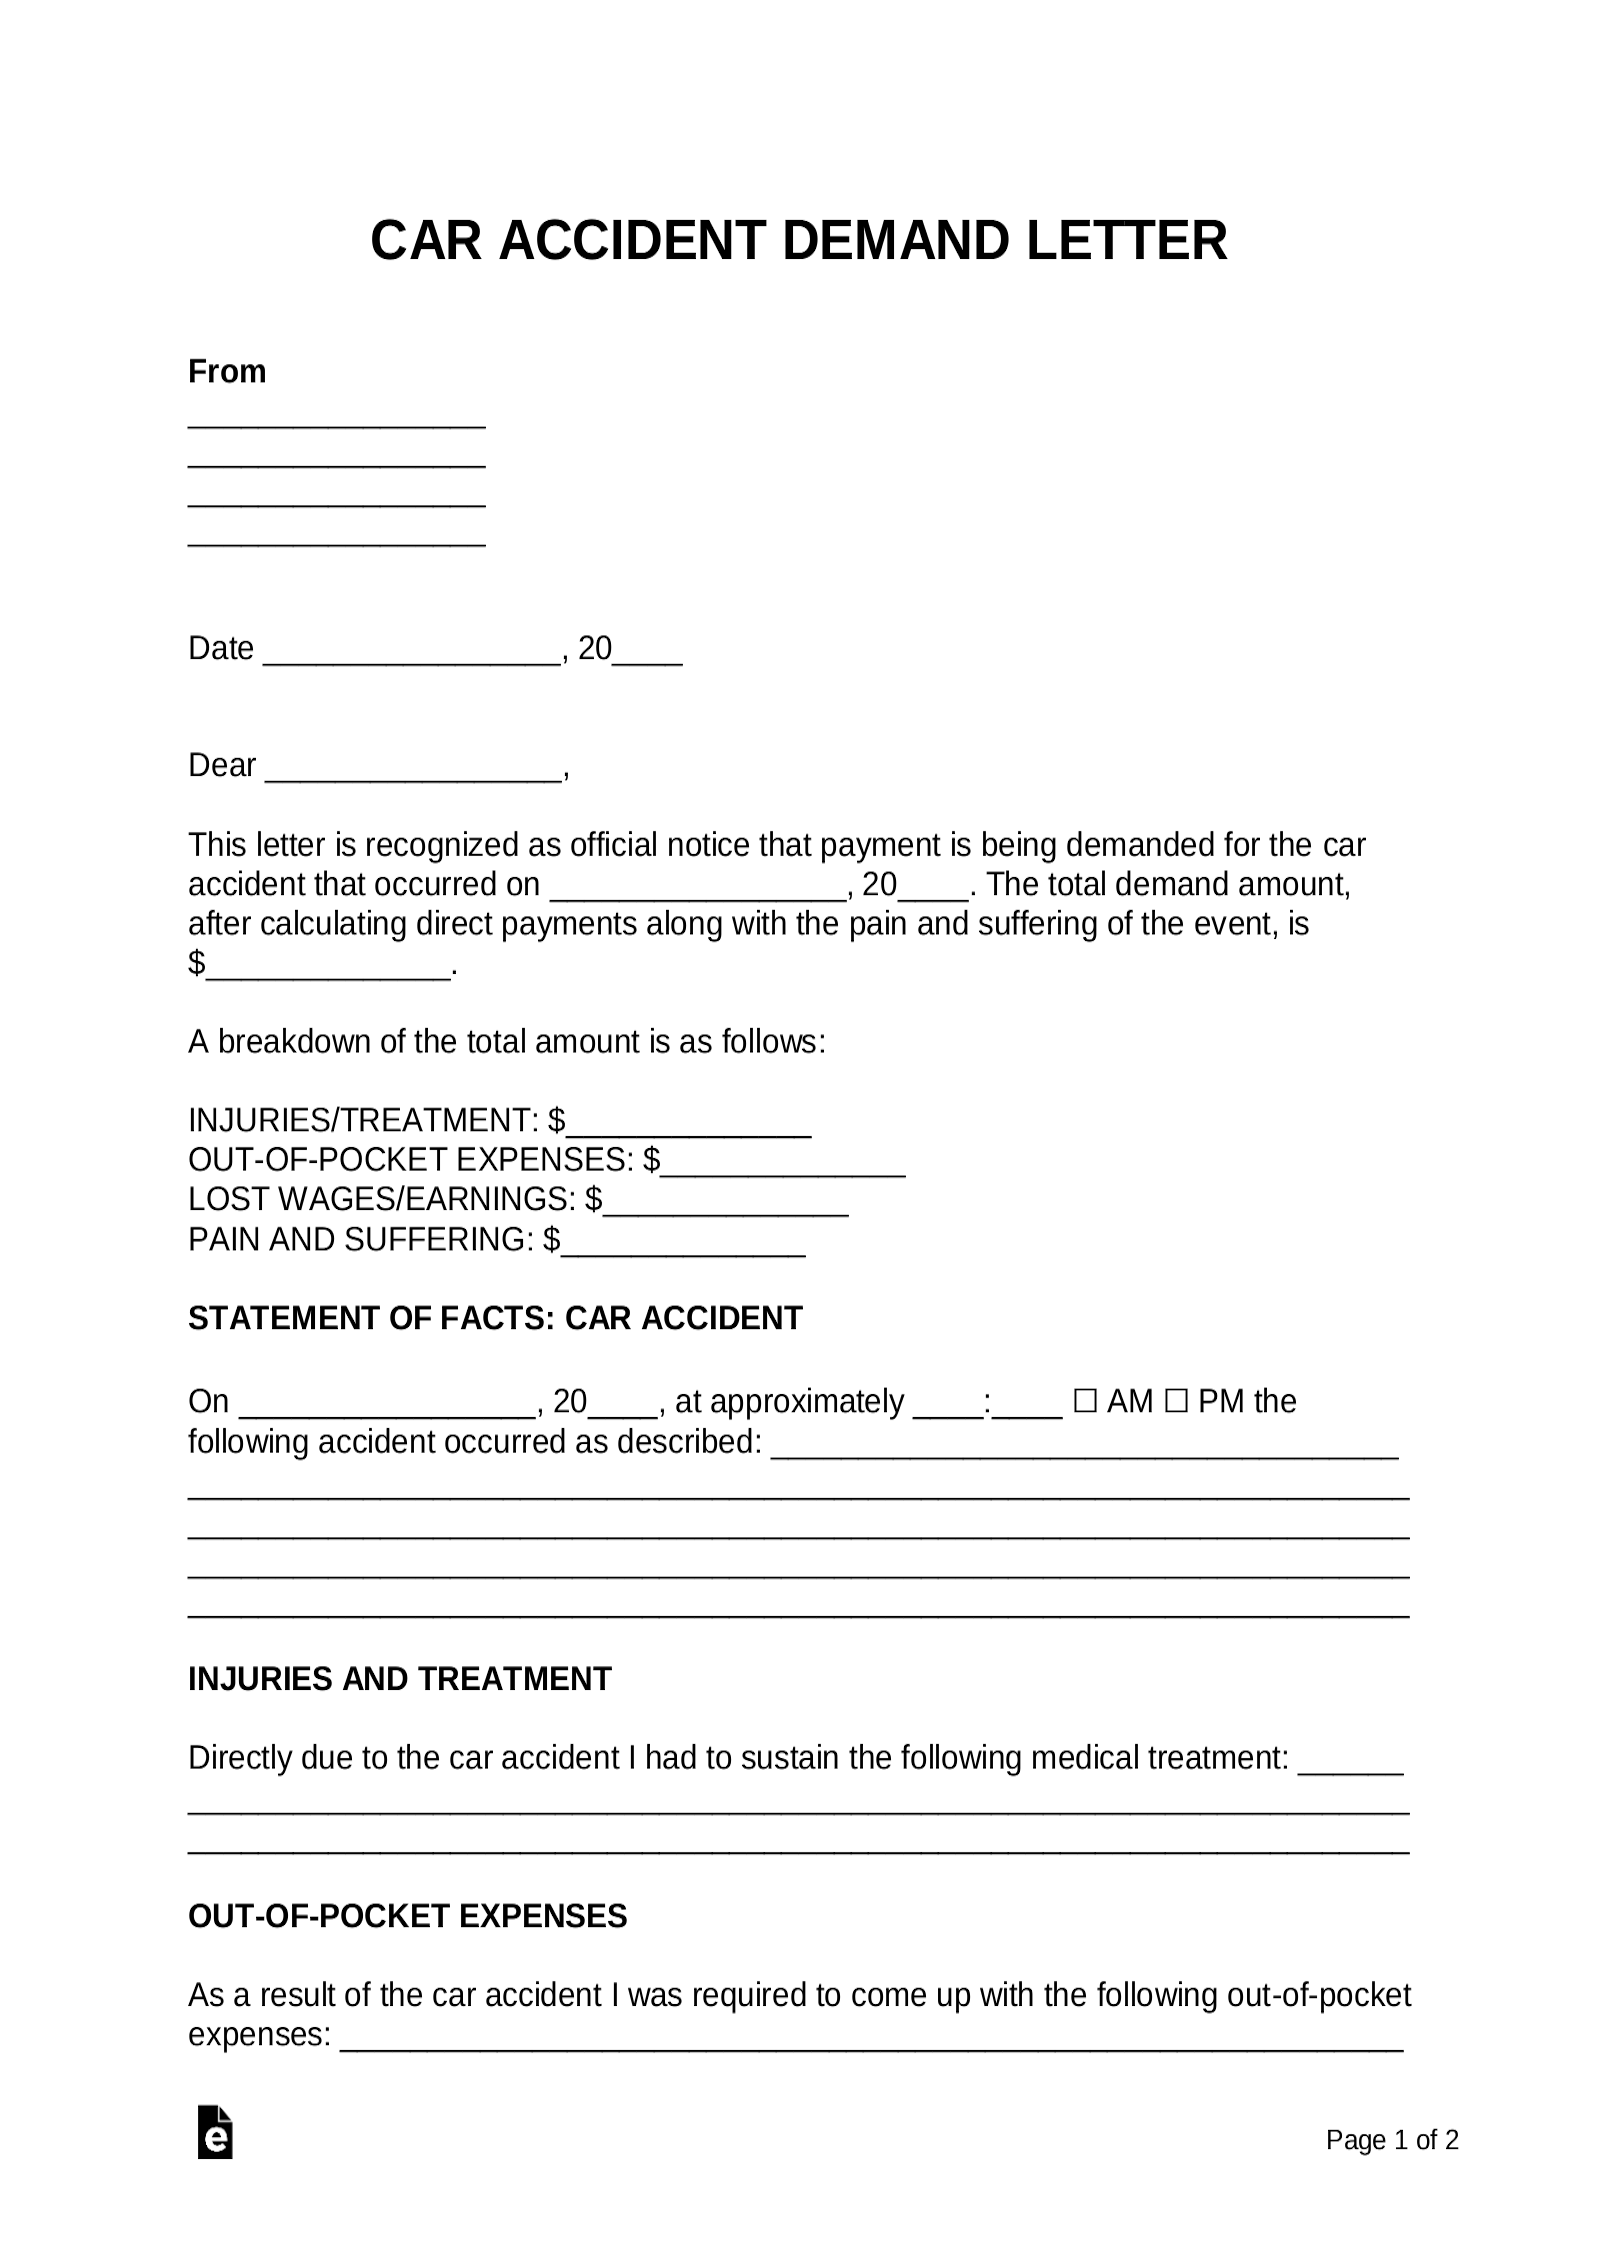 Personal Injury Demand Letter Template in 2020 | Lettering ... |Personal Injury Demand Letter Form